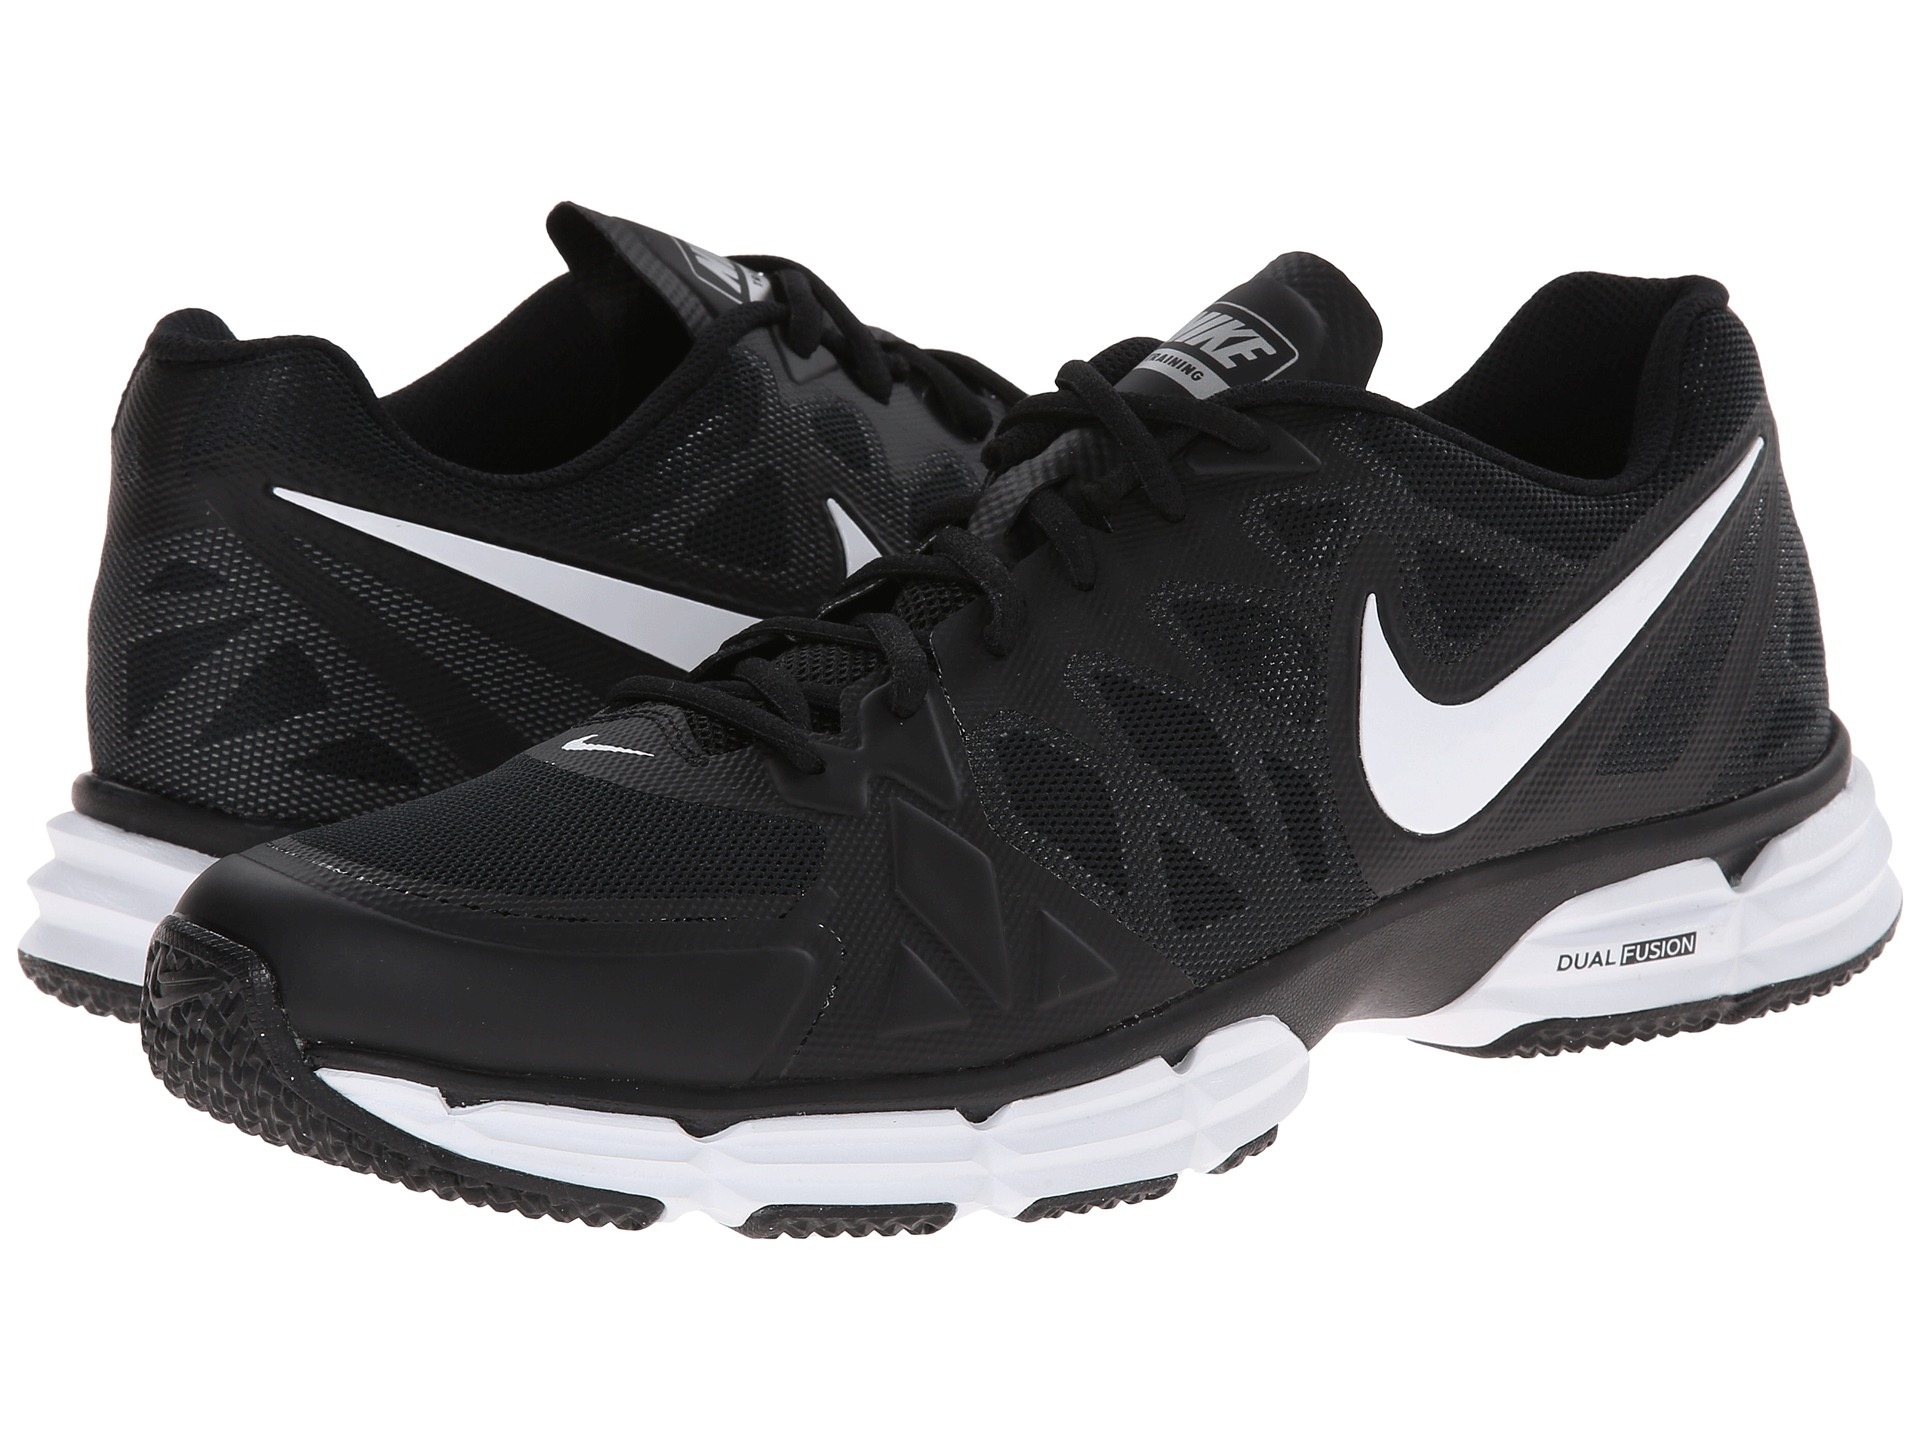 info for 6b82c b0d04 nike black dual fusion tr 6 product 1 27051165 3 049230674 normal